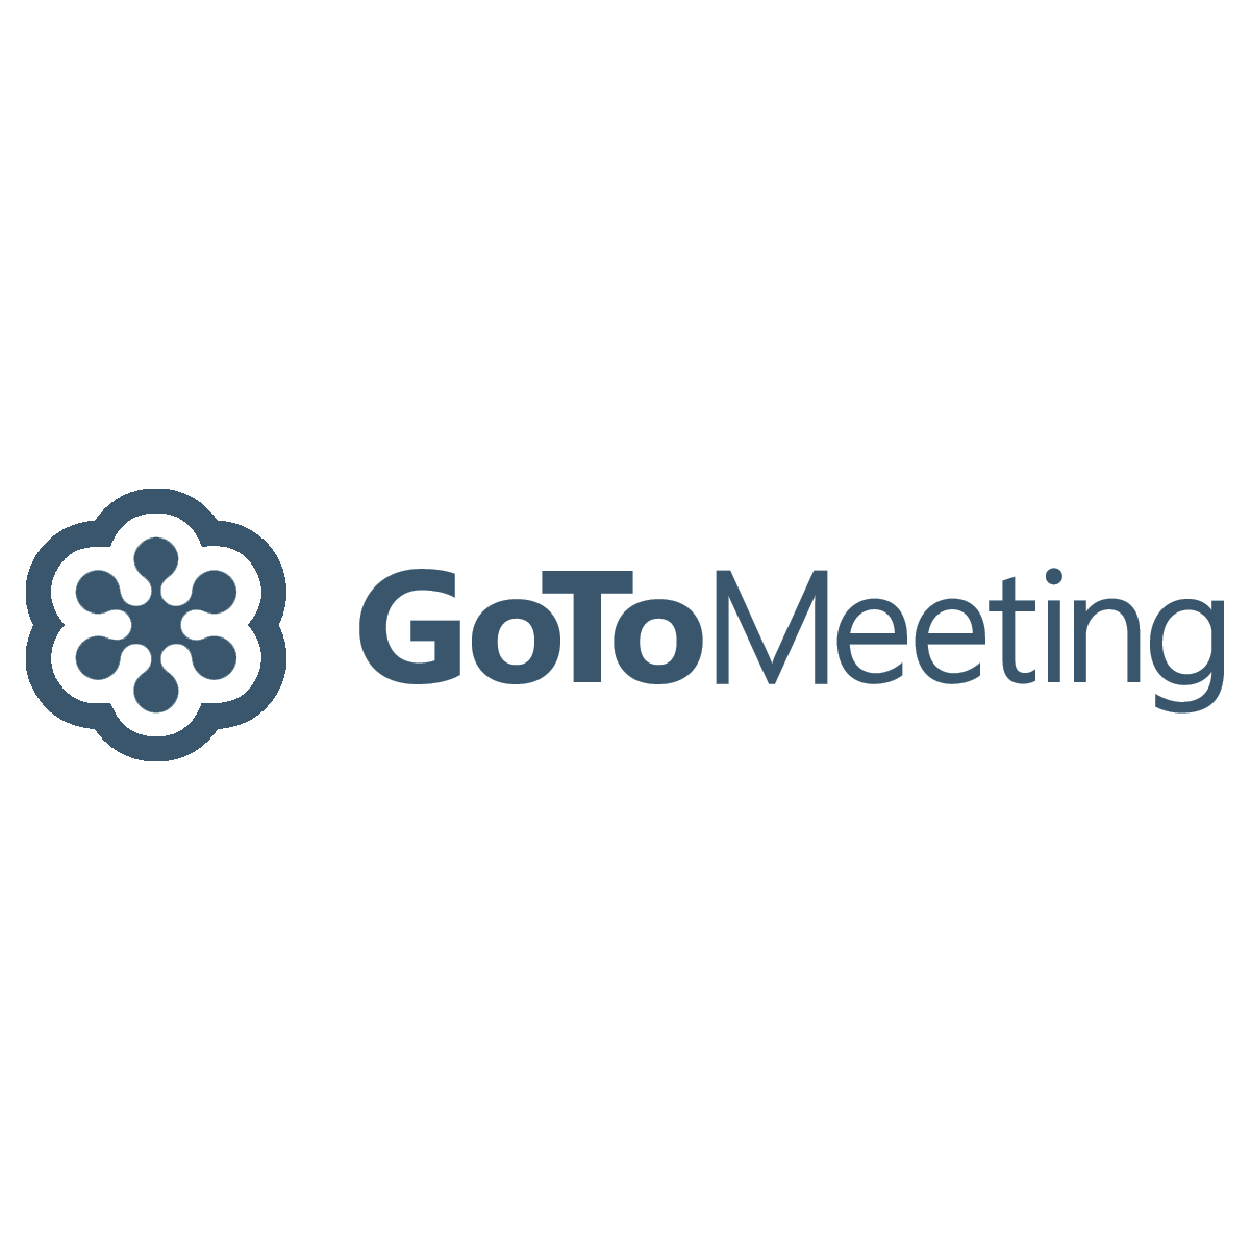 Go to Meeting-01